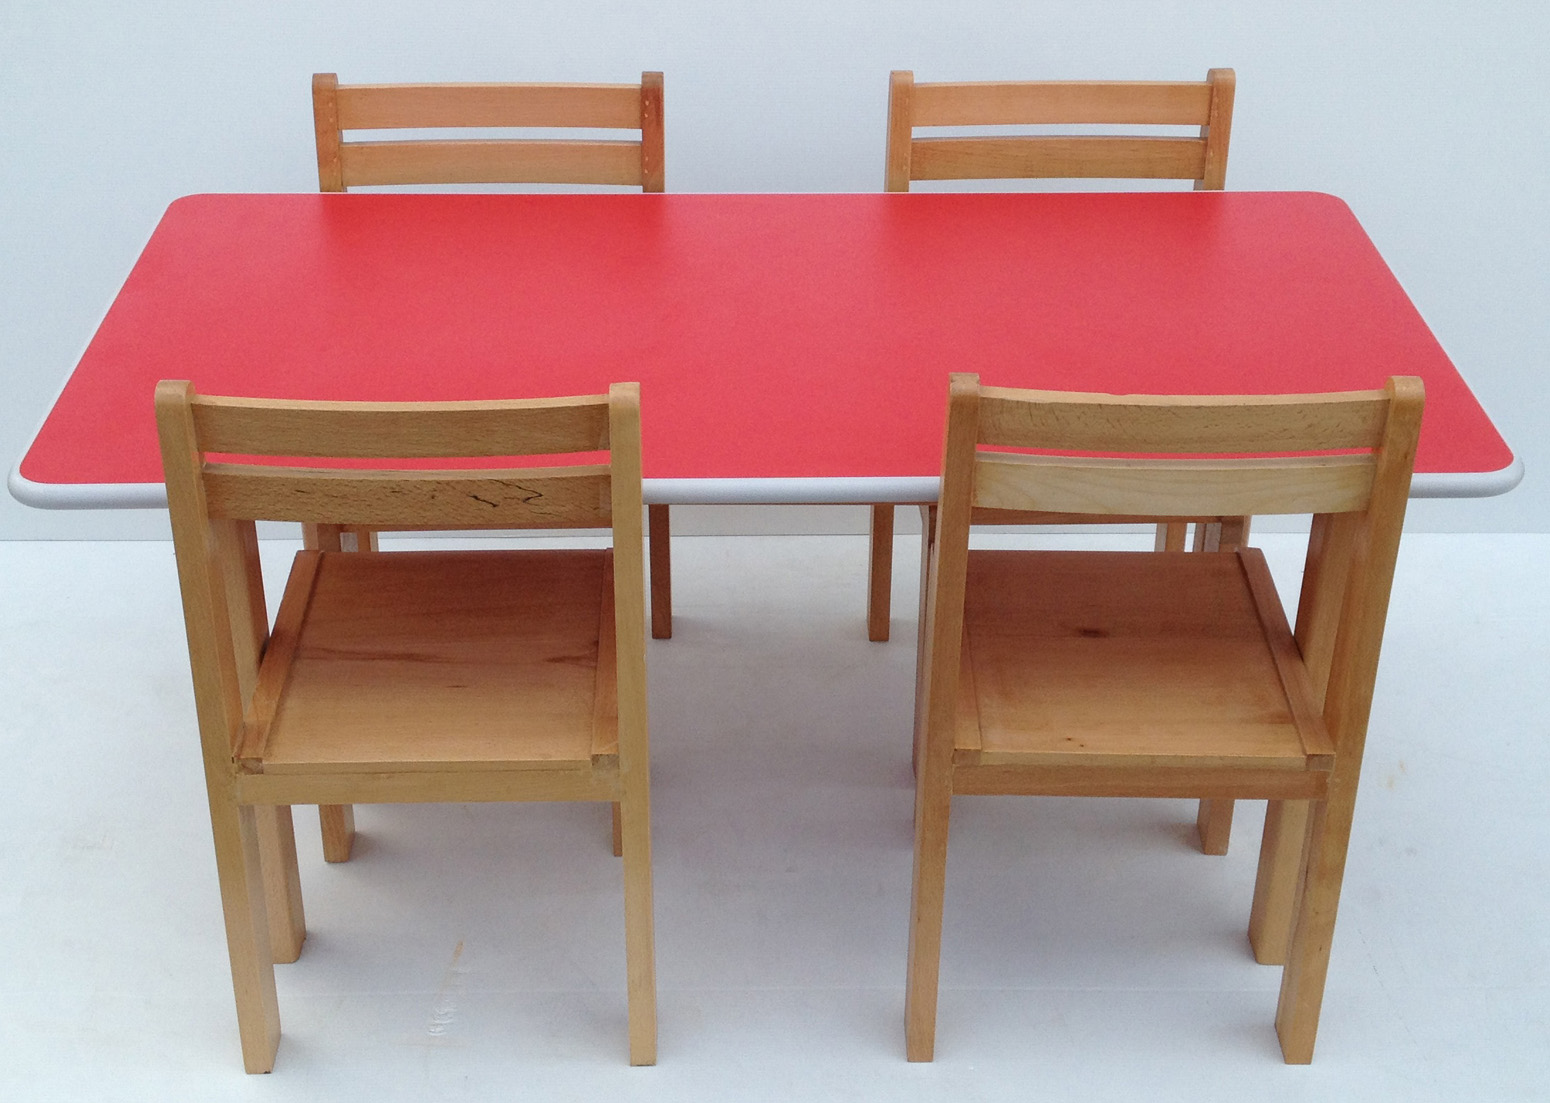 School Table And Chairs Pre School Kids Table And Chairs Classroom Desk